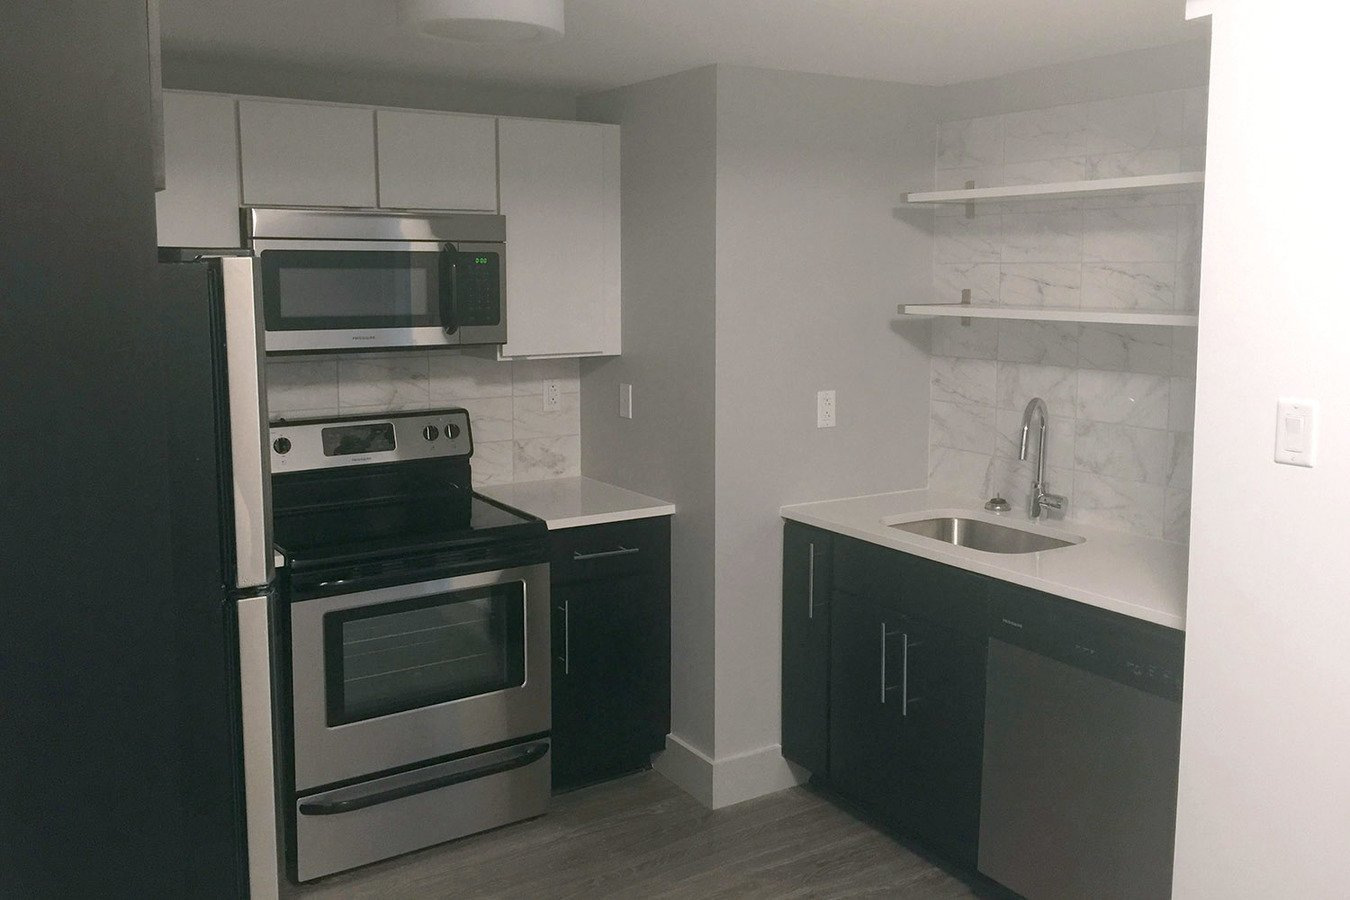 2 Bedrooms 1 Bathroom Apartment for rent at Montclair On The Park in St Louis, MO